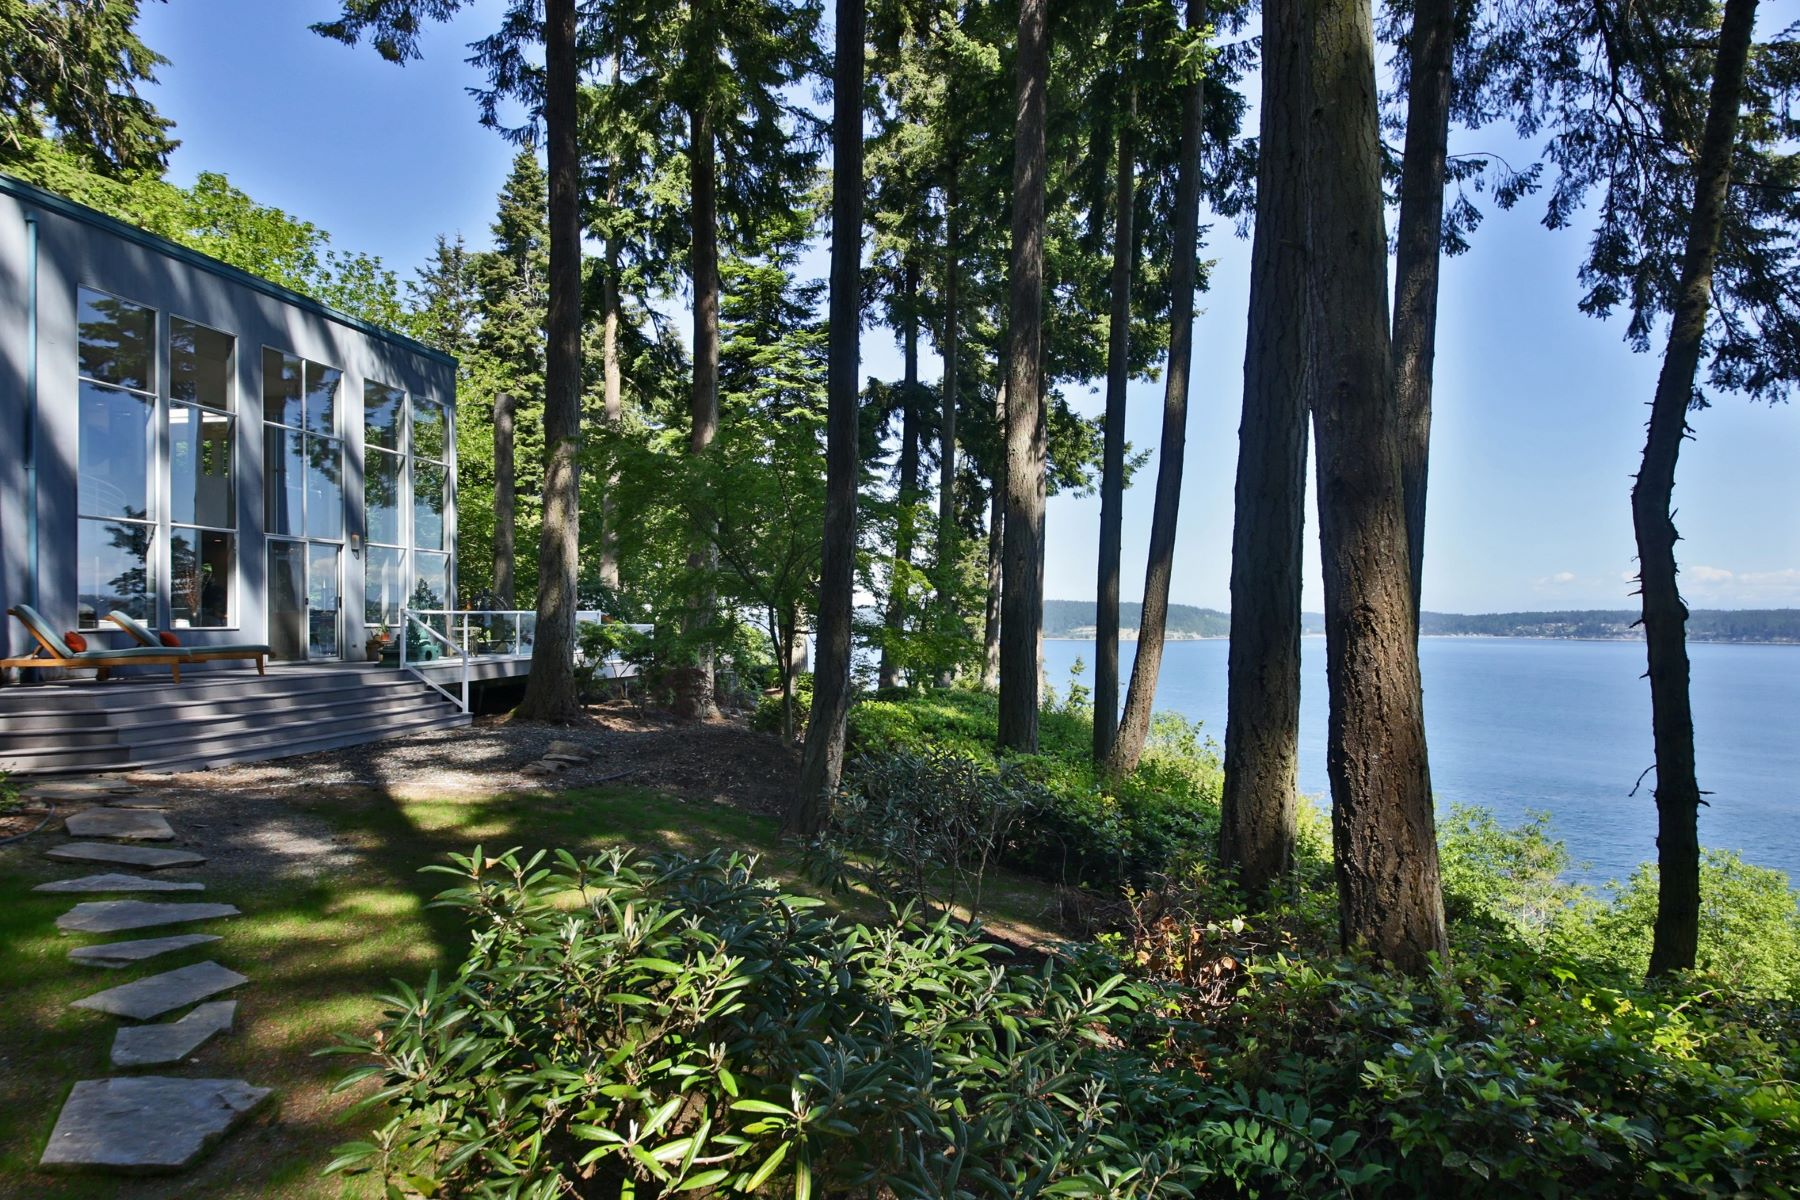 Single Family Home for Sale at 3295 Fox Spit Rd Langley, Washington 98260 United States